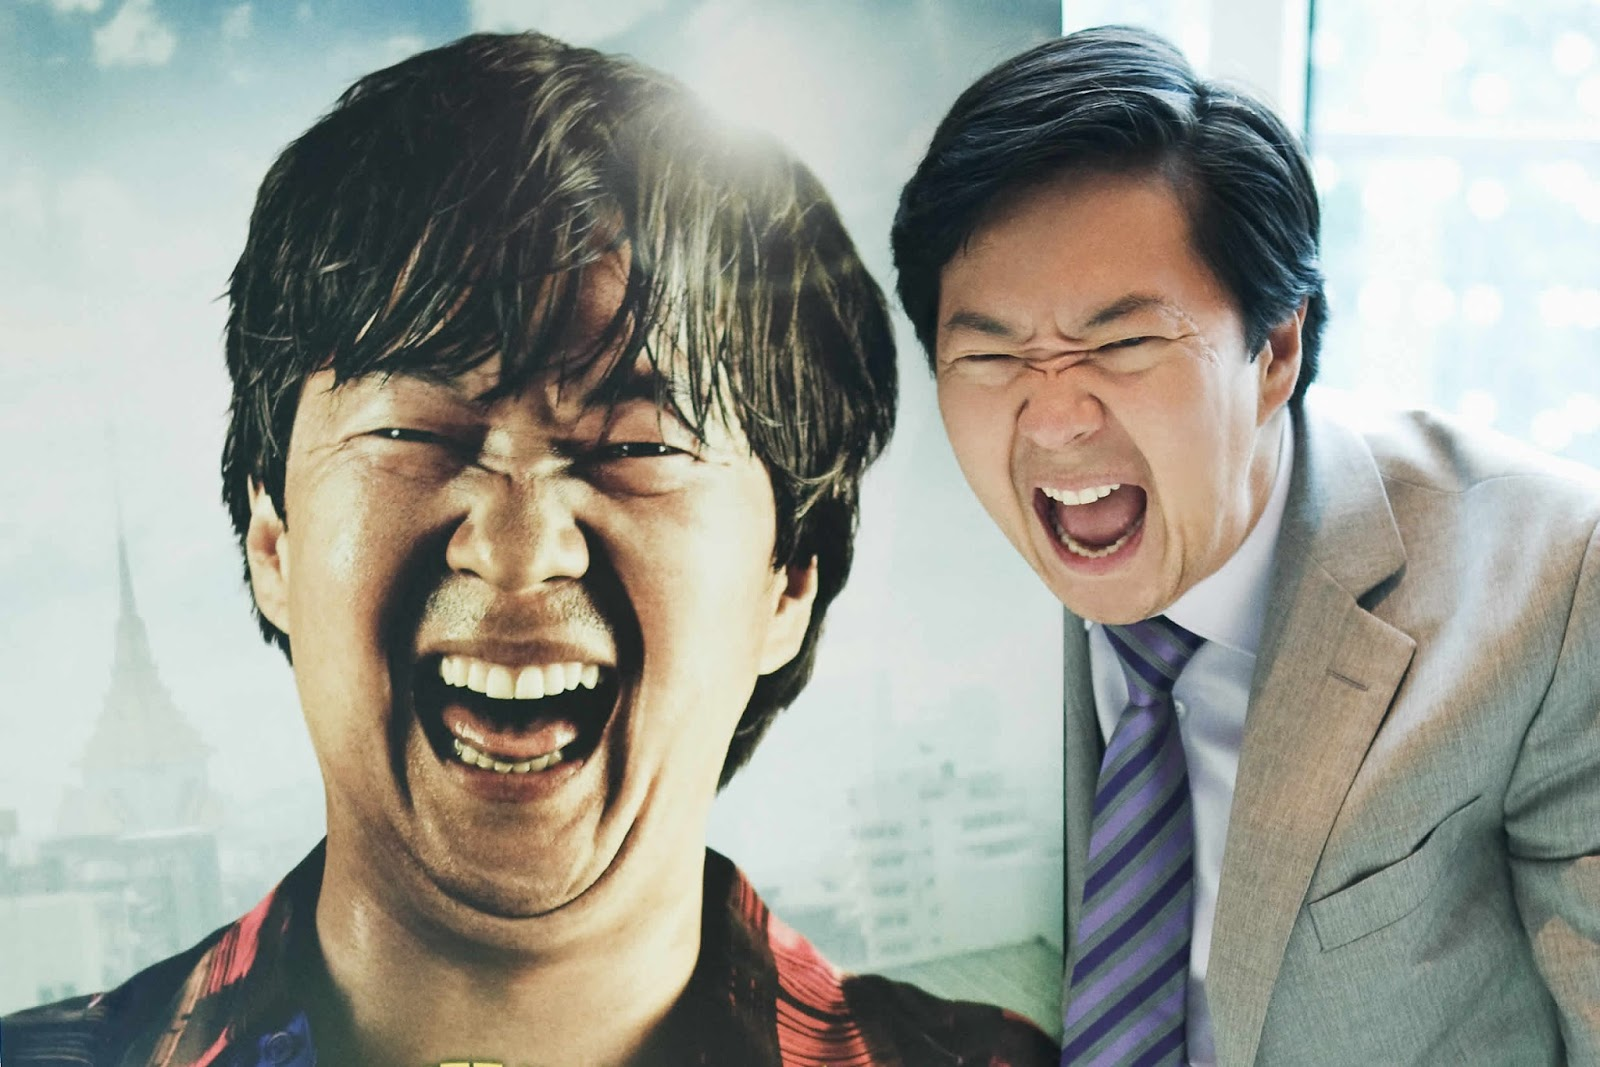 Ken Jeong Screensavers